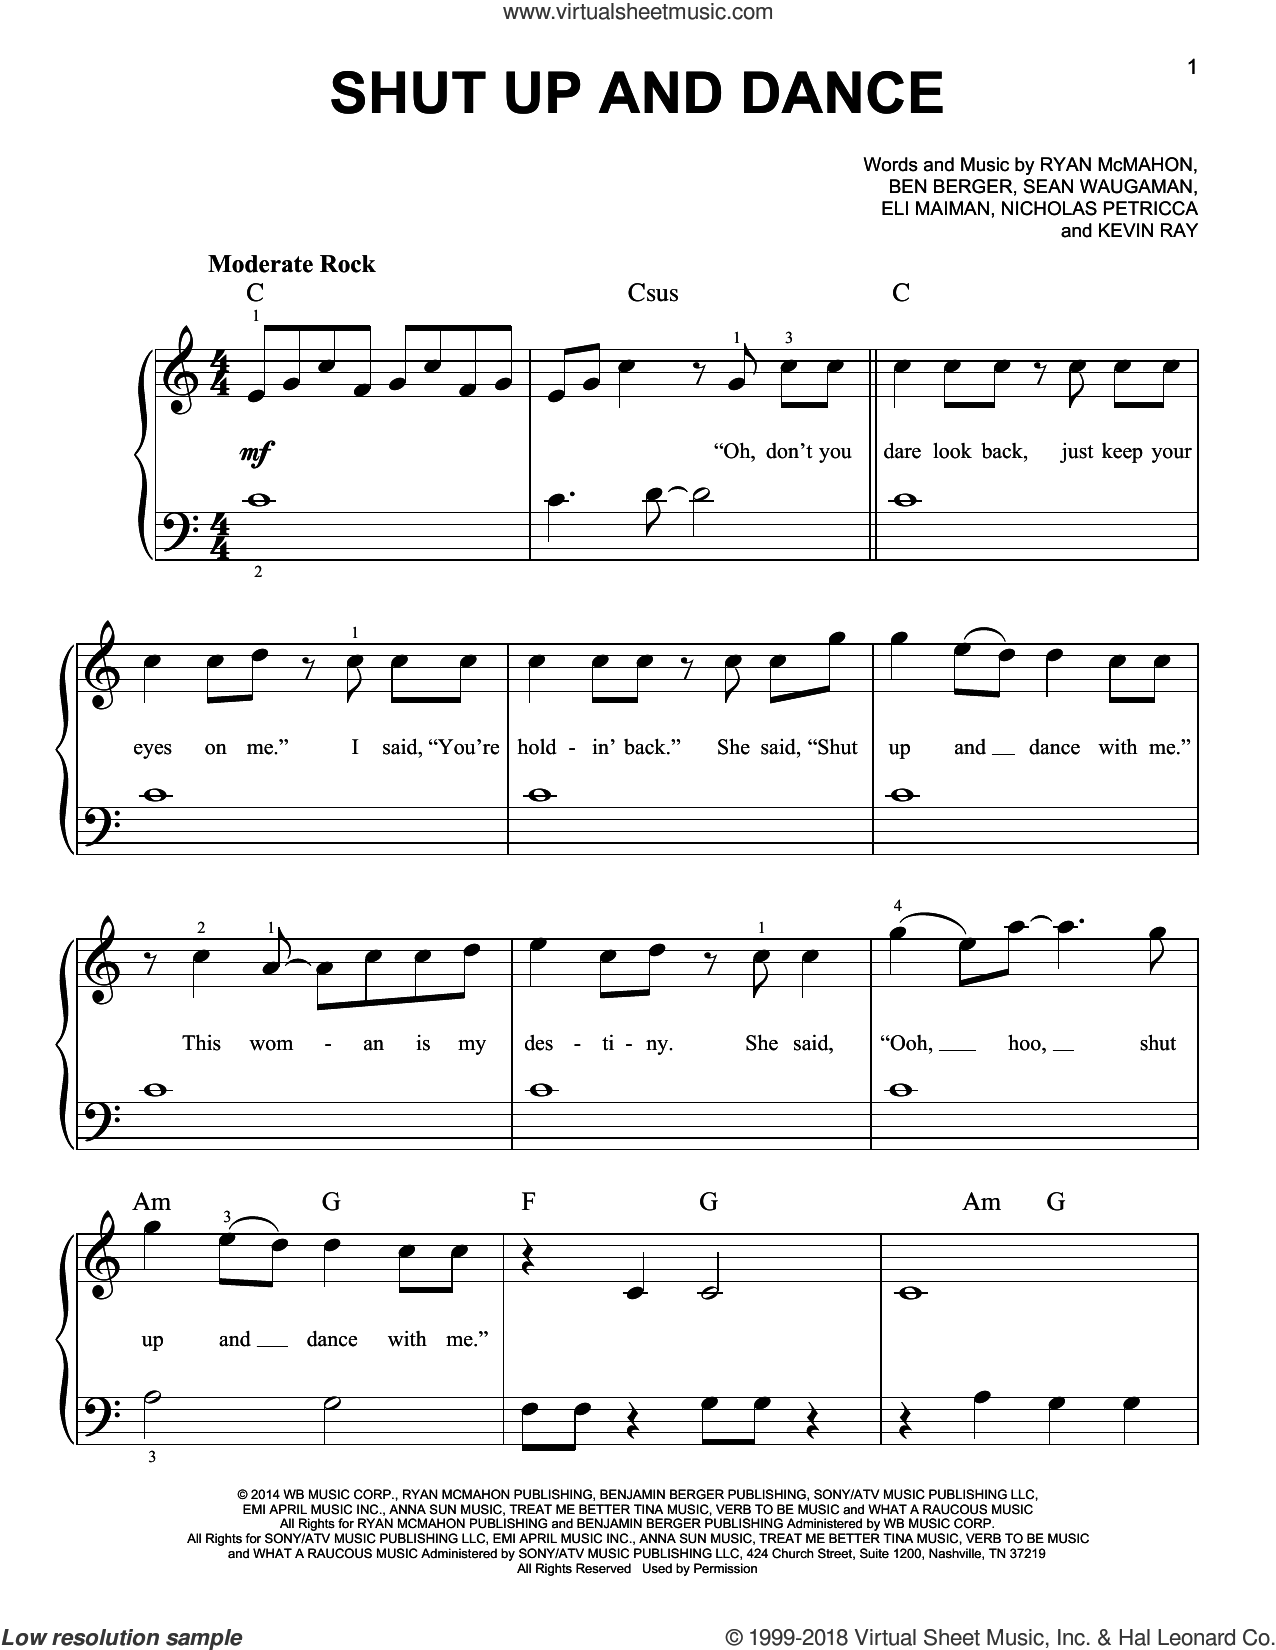 Shut Up And Dance sheet music for piano solo by Walk The Moon, Ben Berger, Eli Maiman, Kevin Ray, Nicholas Petricca, Ryan McMahon and Sean Waugaman, beginner skill level